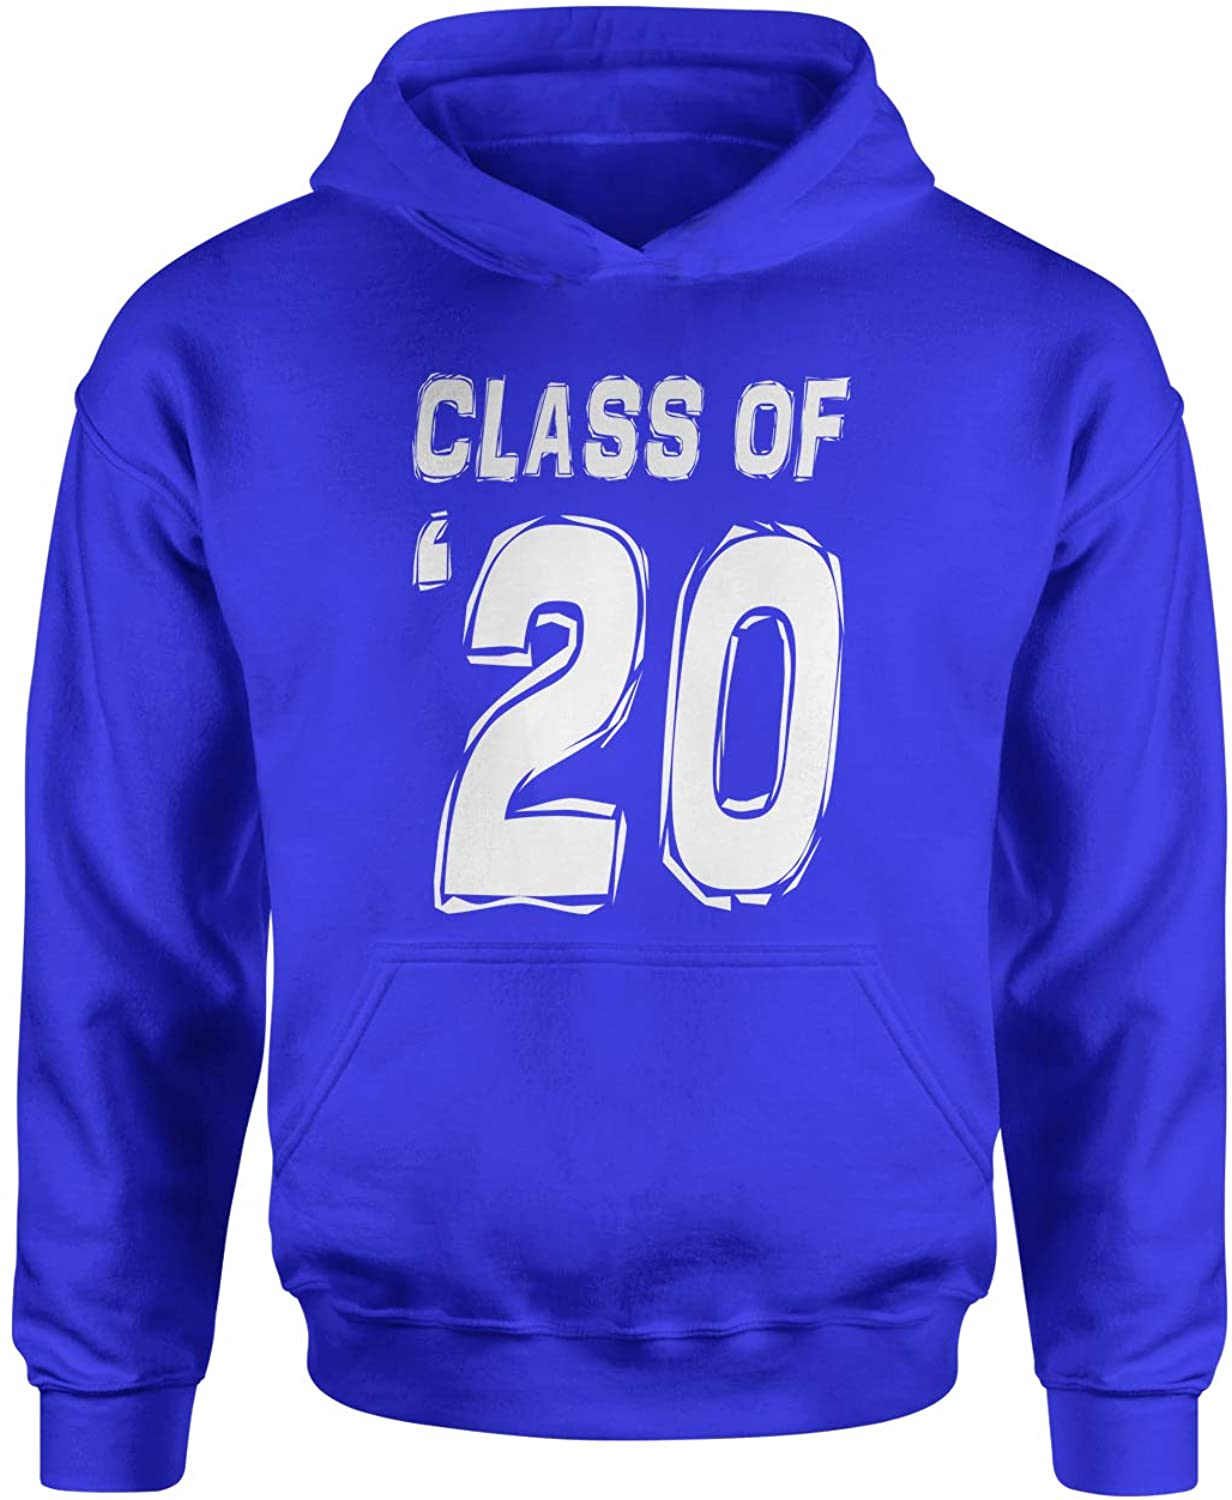 Expression Tees Class of 2020 Graduation Youth-Sized Hoodie